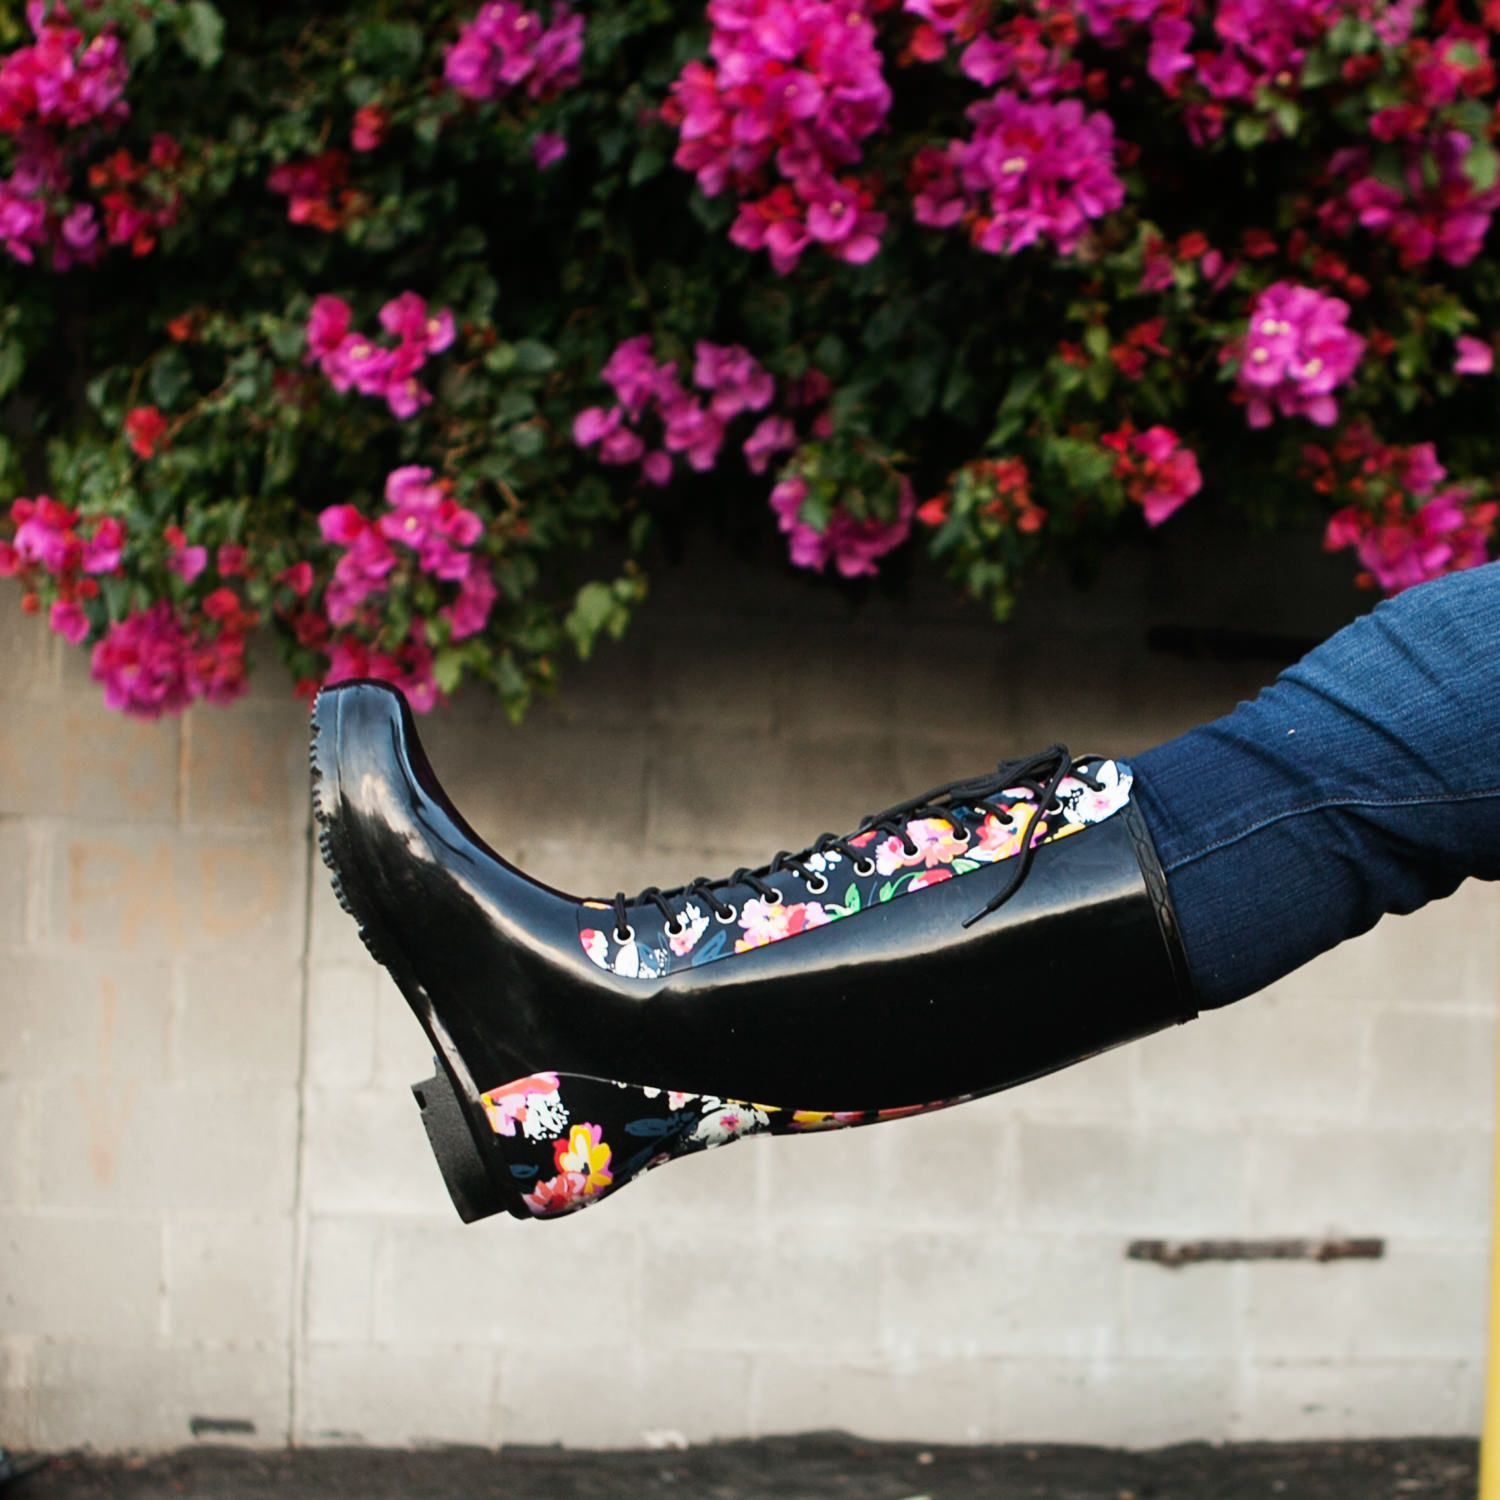 Looking For Floral Rain Boots These Adorable Printed Rain